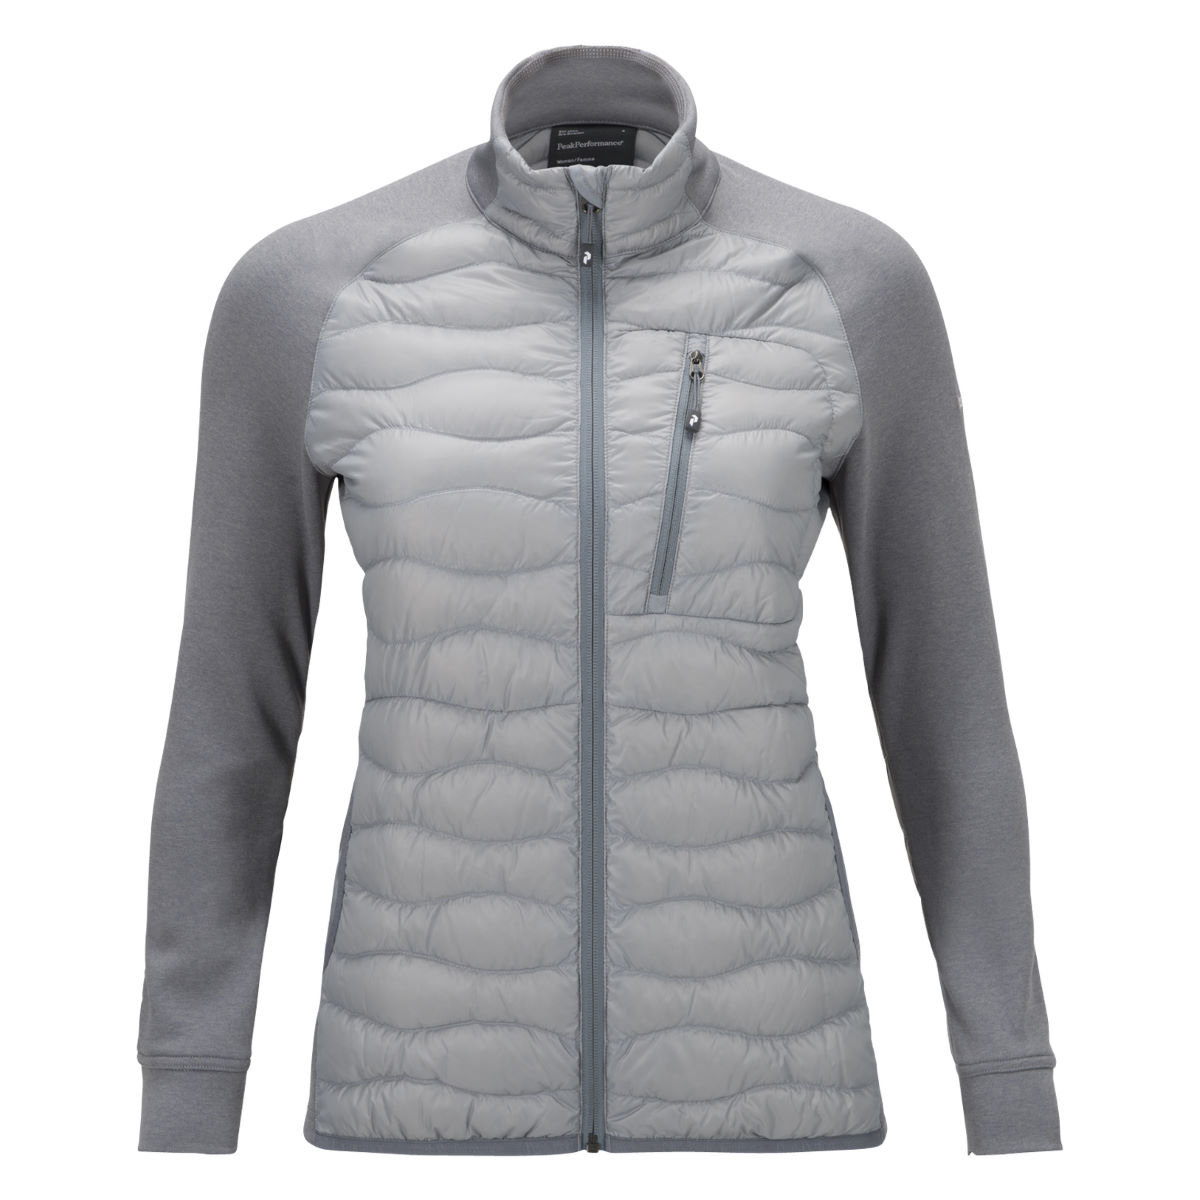 Peak Performance Women's Helium Hybrid Jacket - X Small Silver